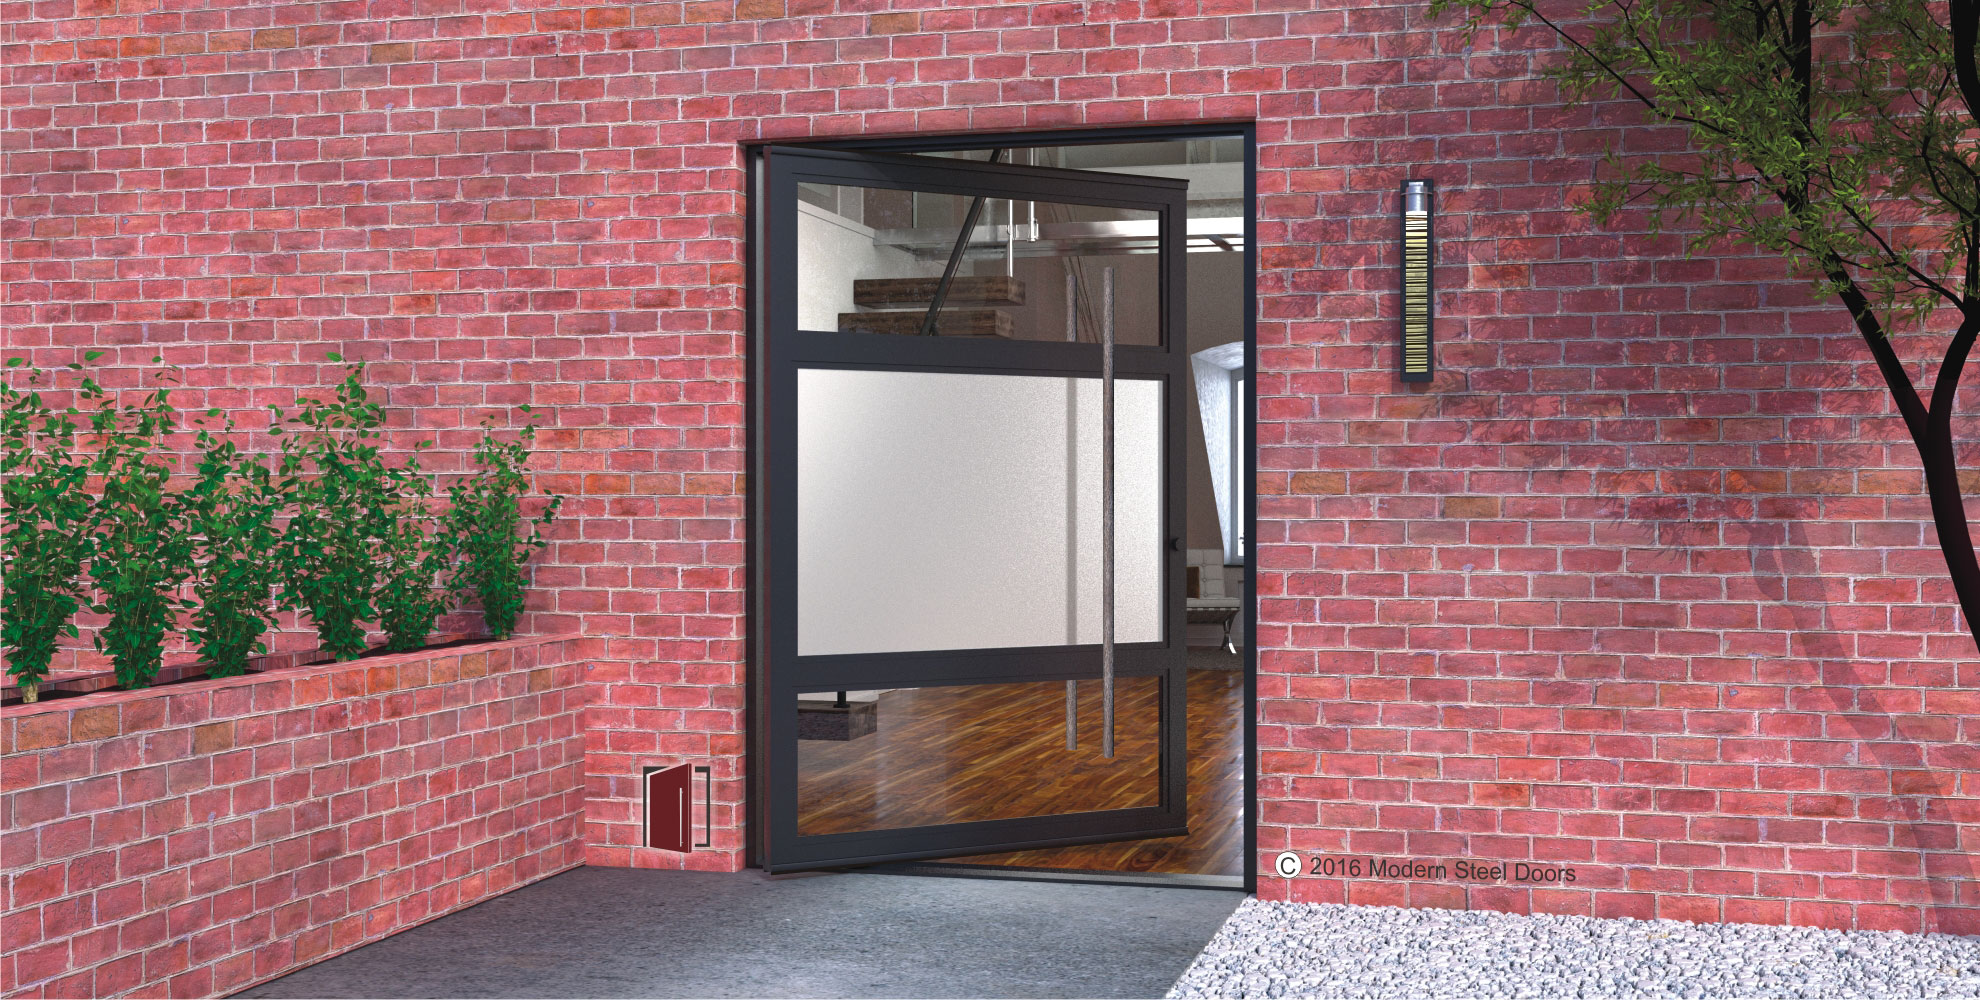 horizon single pivot door design made of clear and frosted glass panels with round custom made door pulls on red brick home front